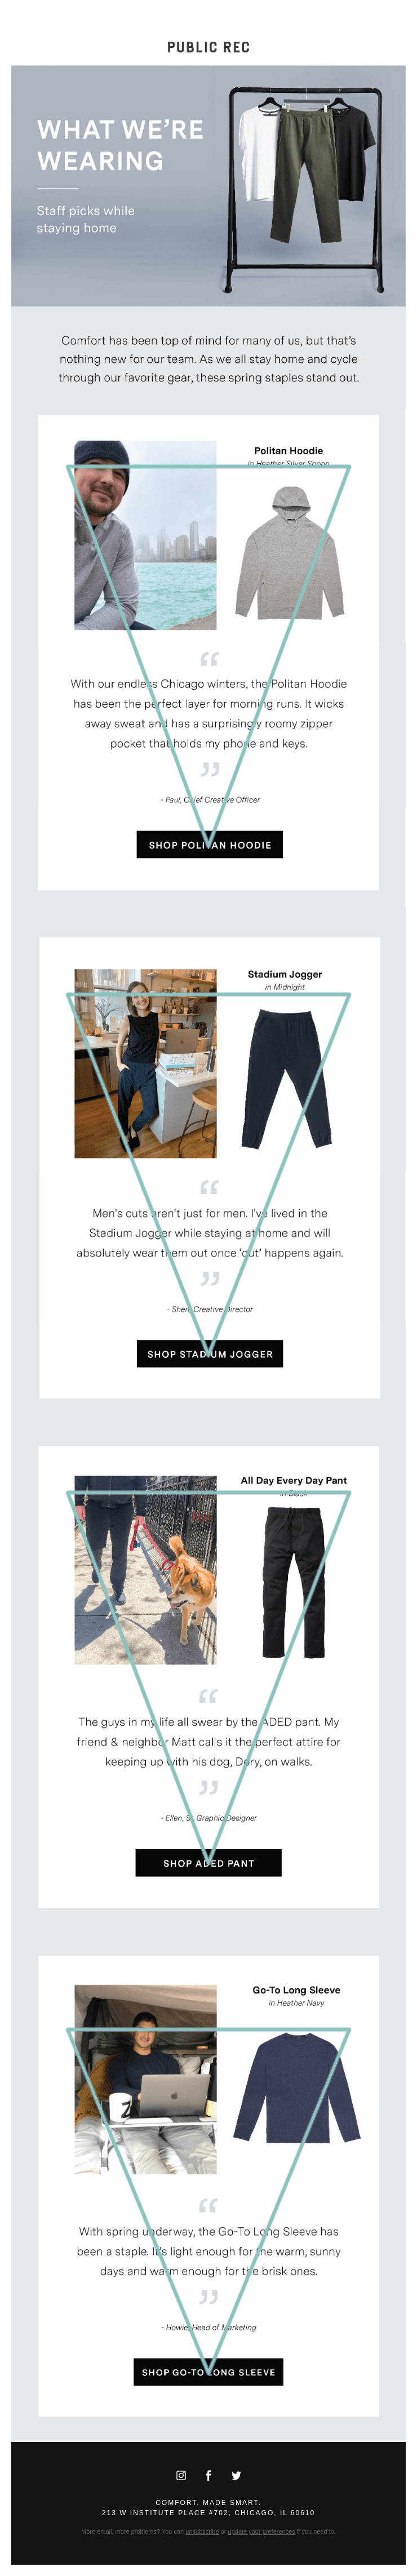 public rec example for an inverted pyramid email design